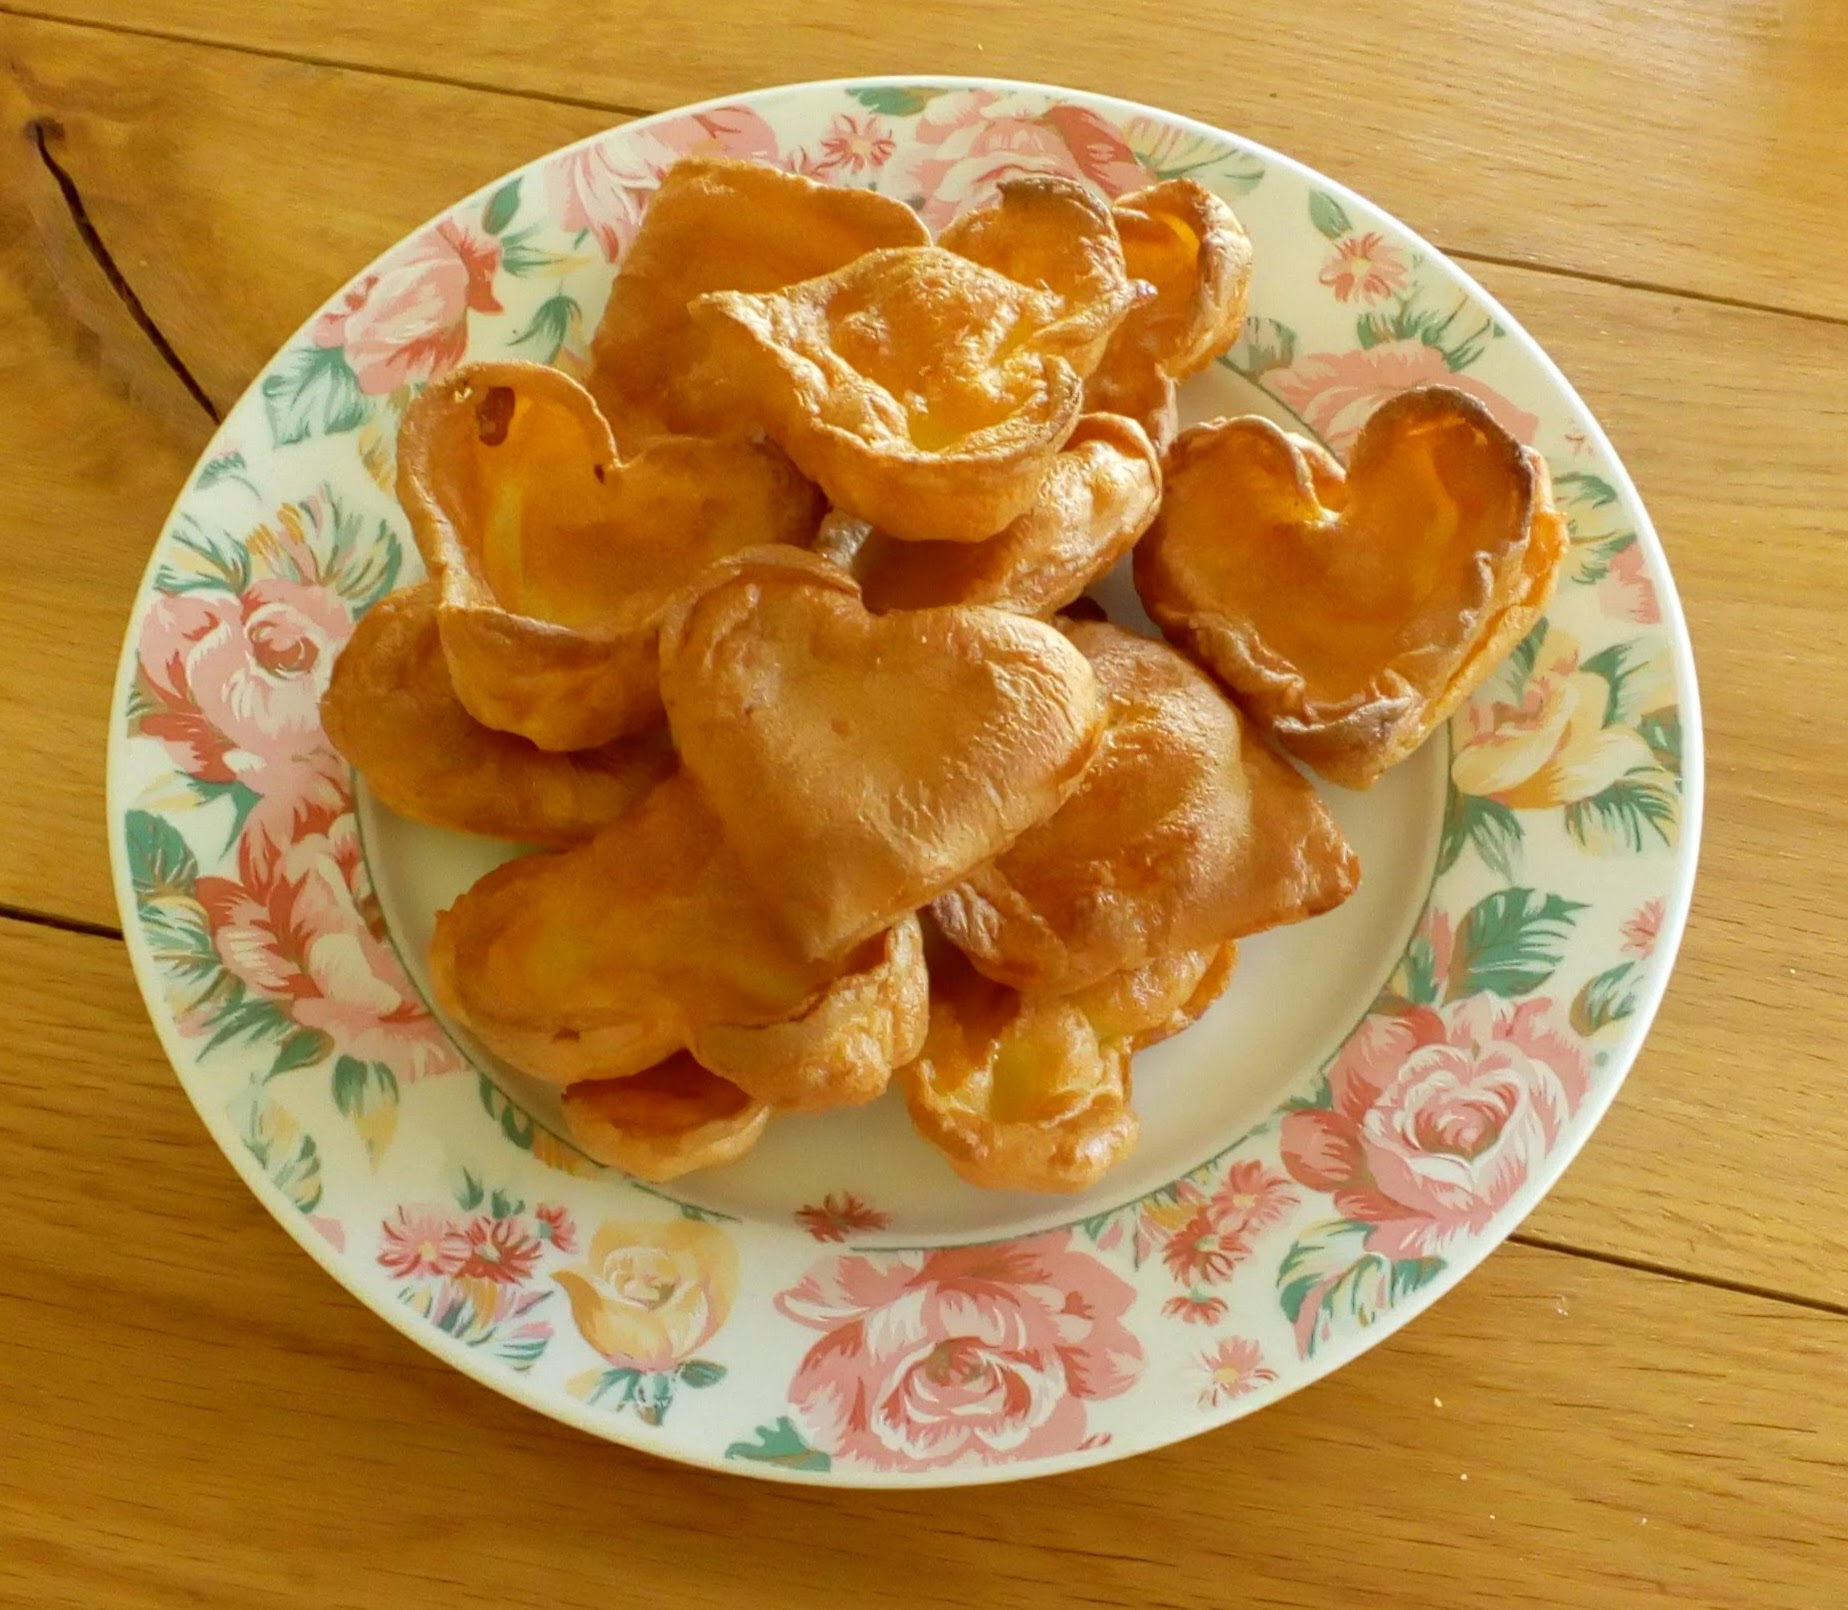 heart shaped diary free yorkshire puddings